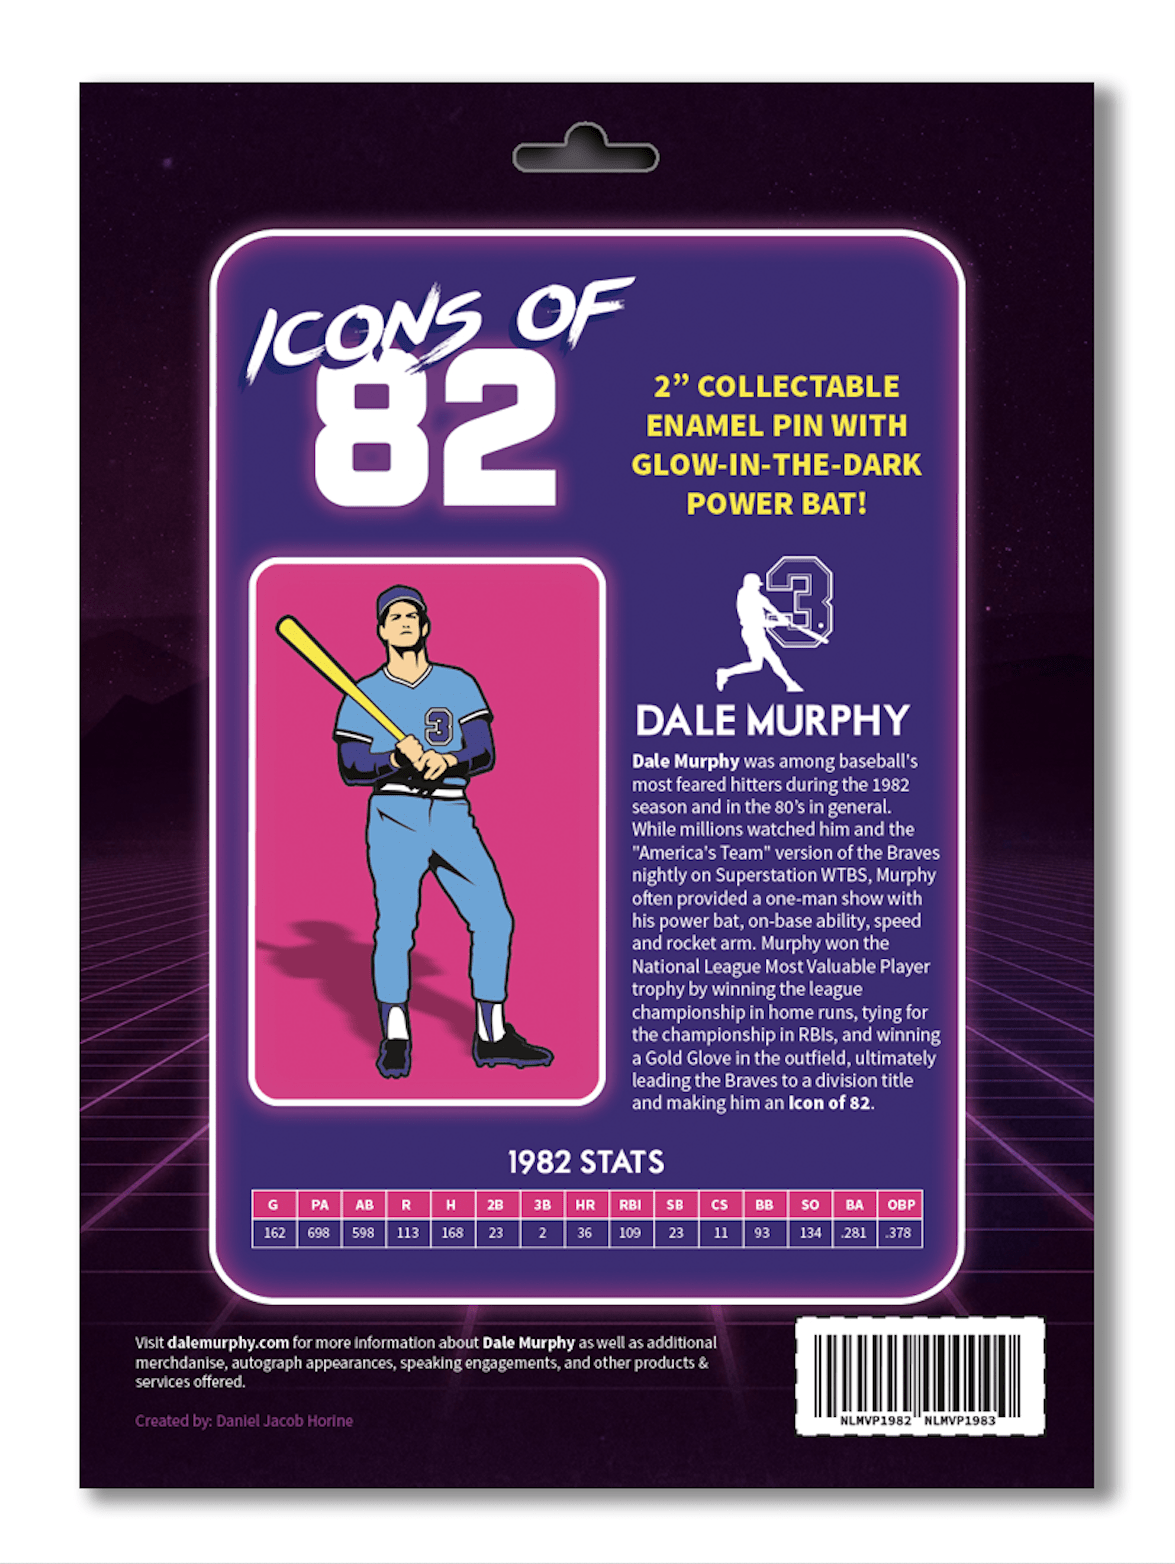 NEW! 'Icons of 82' glow-in-the-dark pin